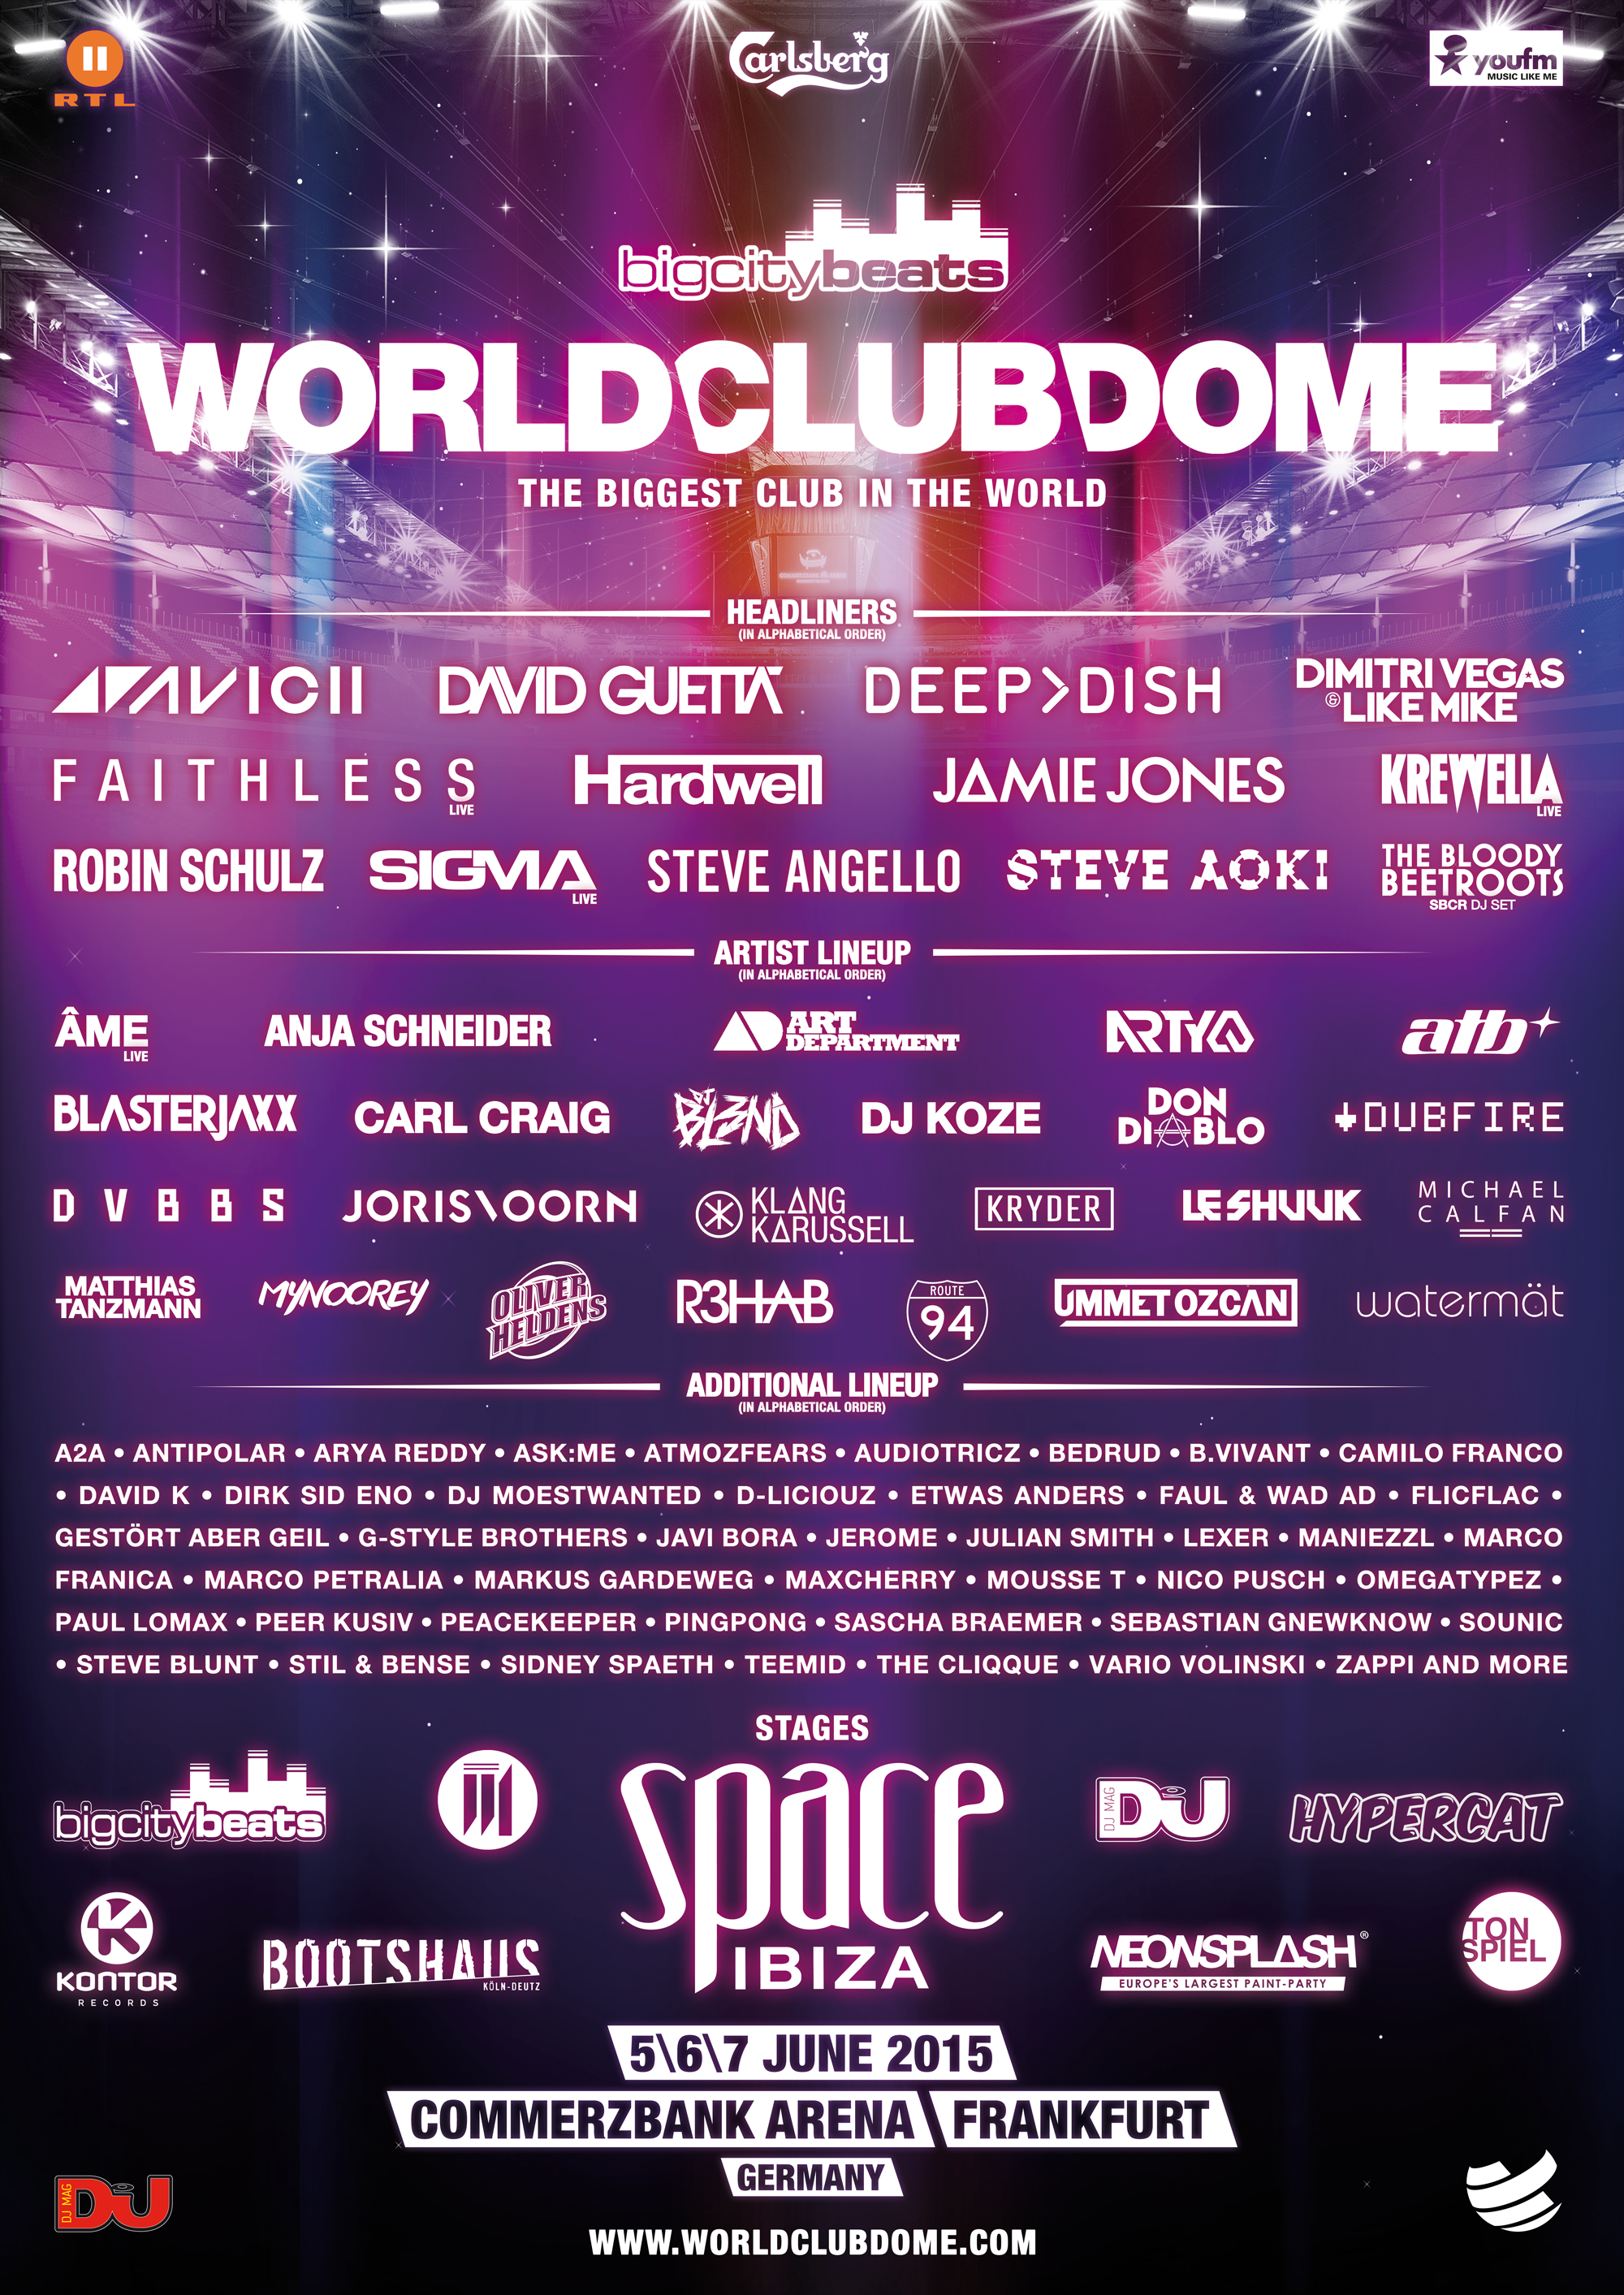 World Club Dome Final Line Up Space Ibiza avicii deutschland